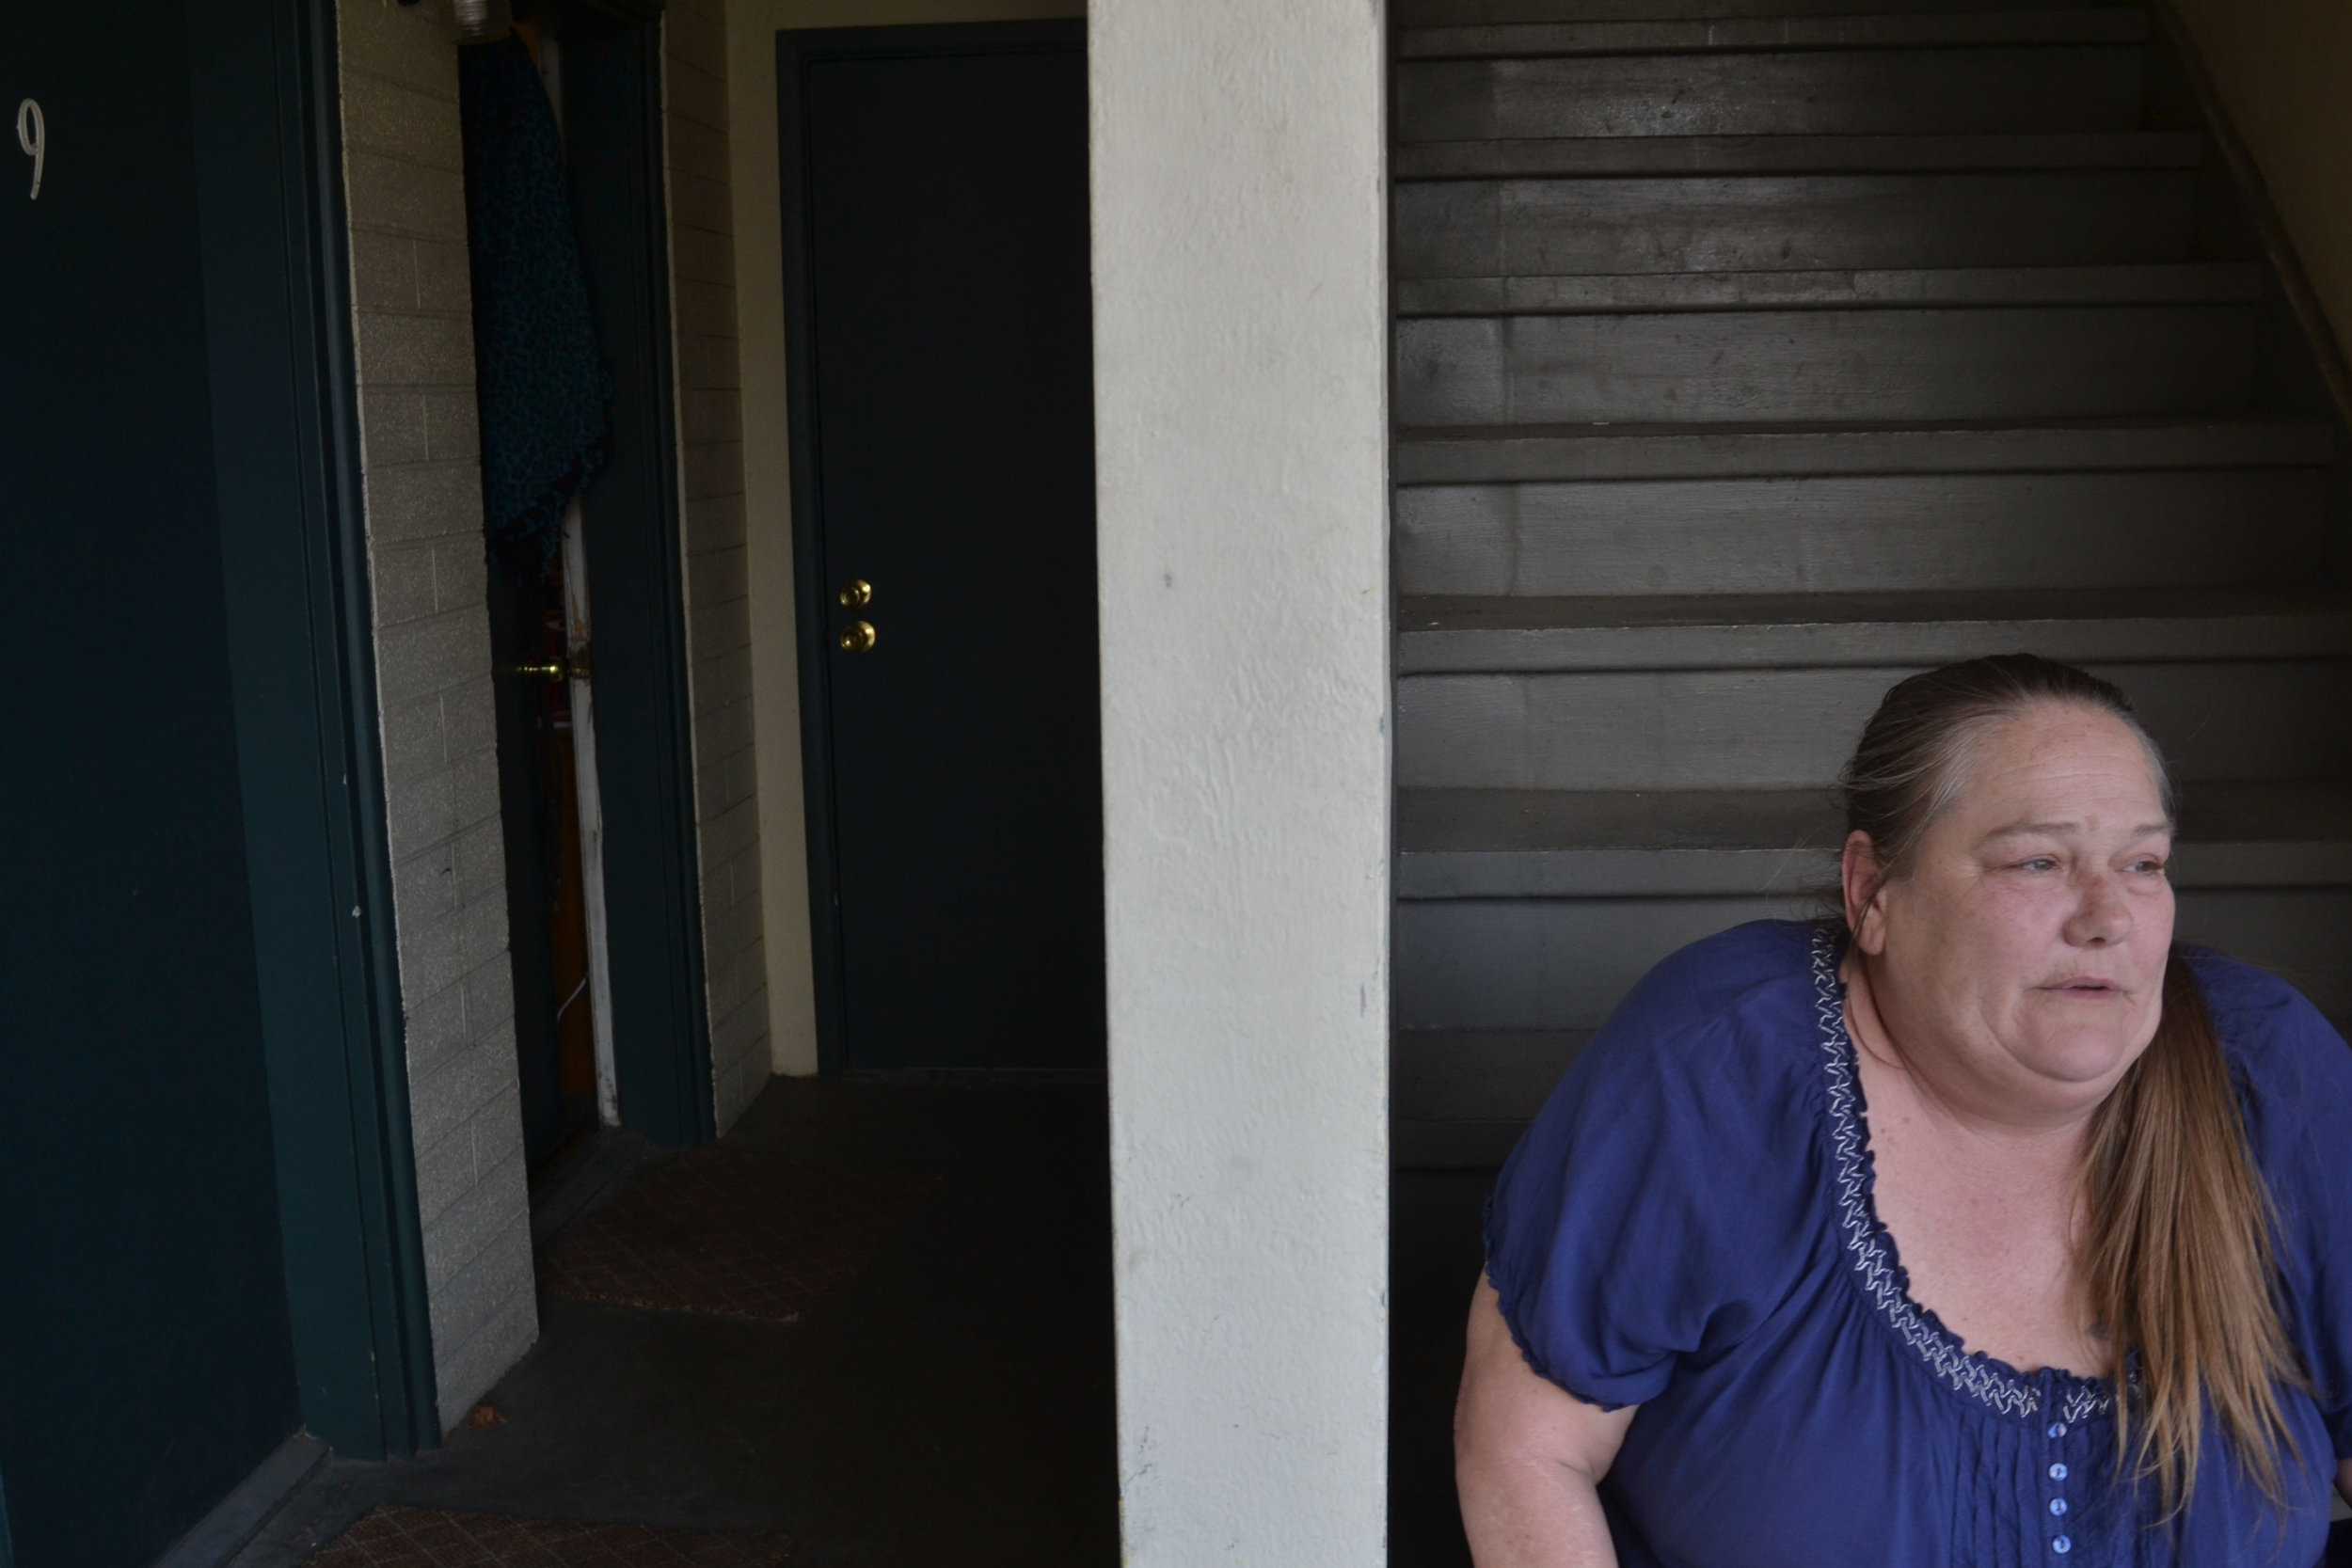 """I've had nightmares like that, you know, I don't want, I'm not going to be back on the streets again,"" Kristine Lawson, 57, said outside of her tiny room at a city motel on Virginia street. When we met her, the motel provided her a roof over her head. But considering the ongoing demolition of motels, she said she was afraid her nightmares might come true. Photo and reporting by Sudhiti Naskar"